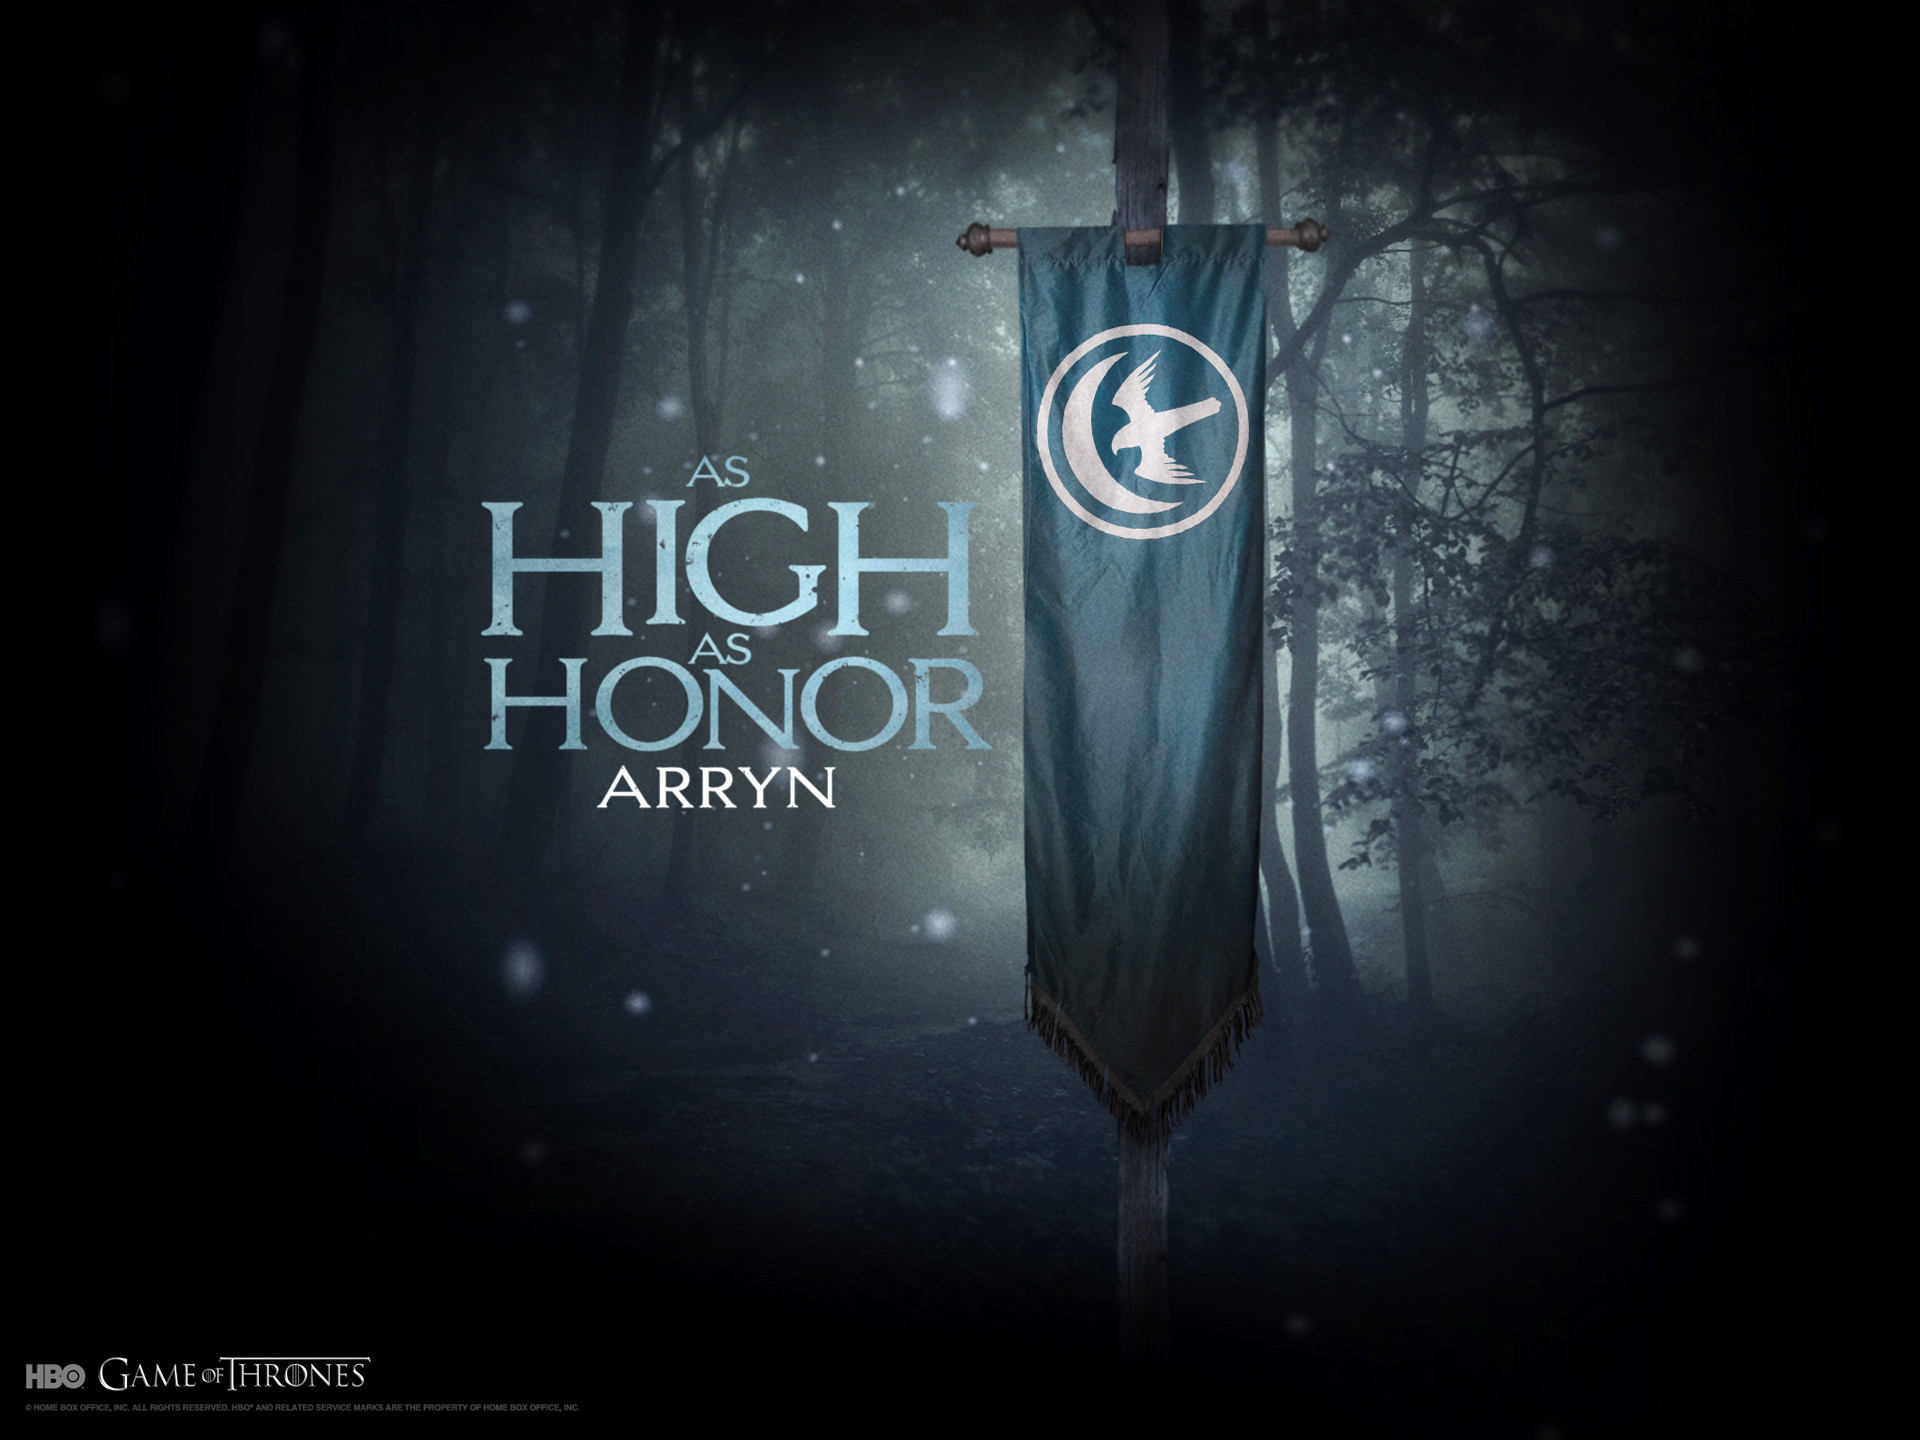 game of thrones images | Game of Thrones House Arryn HD Wallpaper #1996